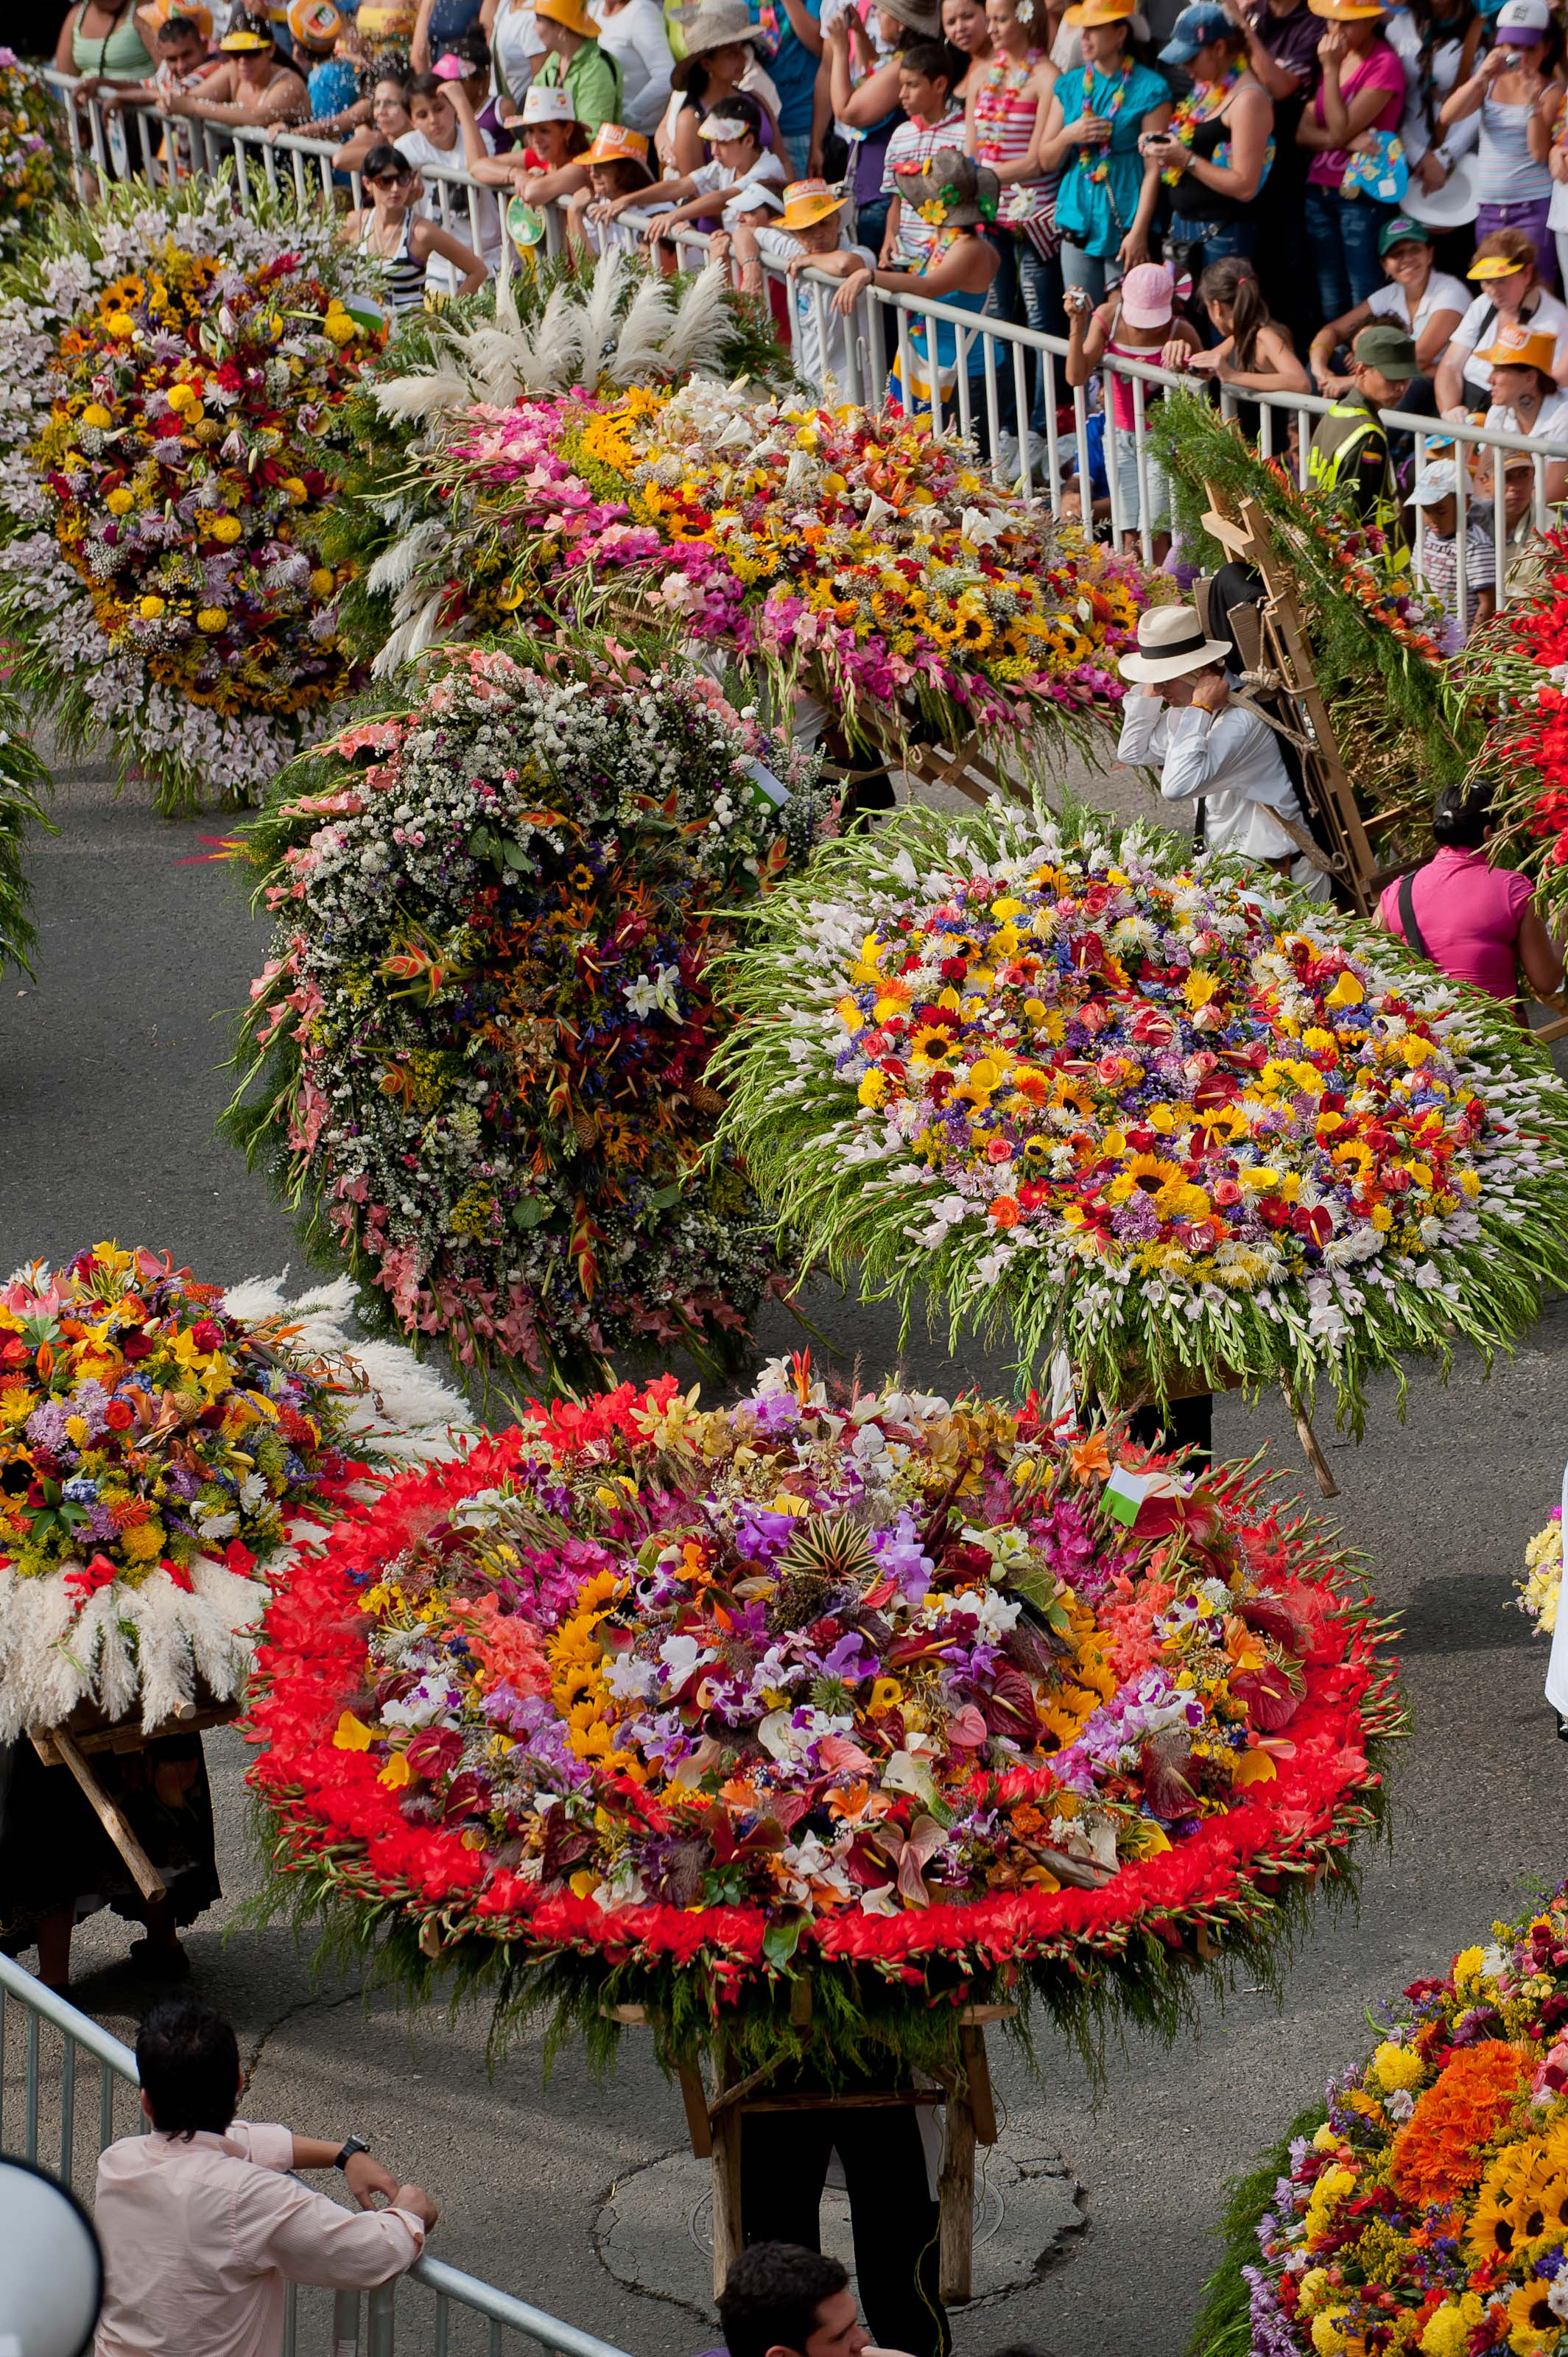 Medellín, Colombia is famous for cut flowers which is celebrated in a major August festival.